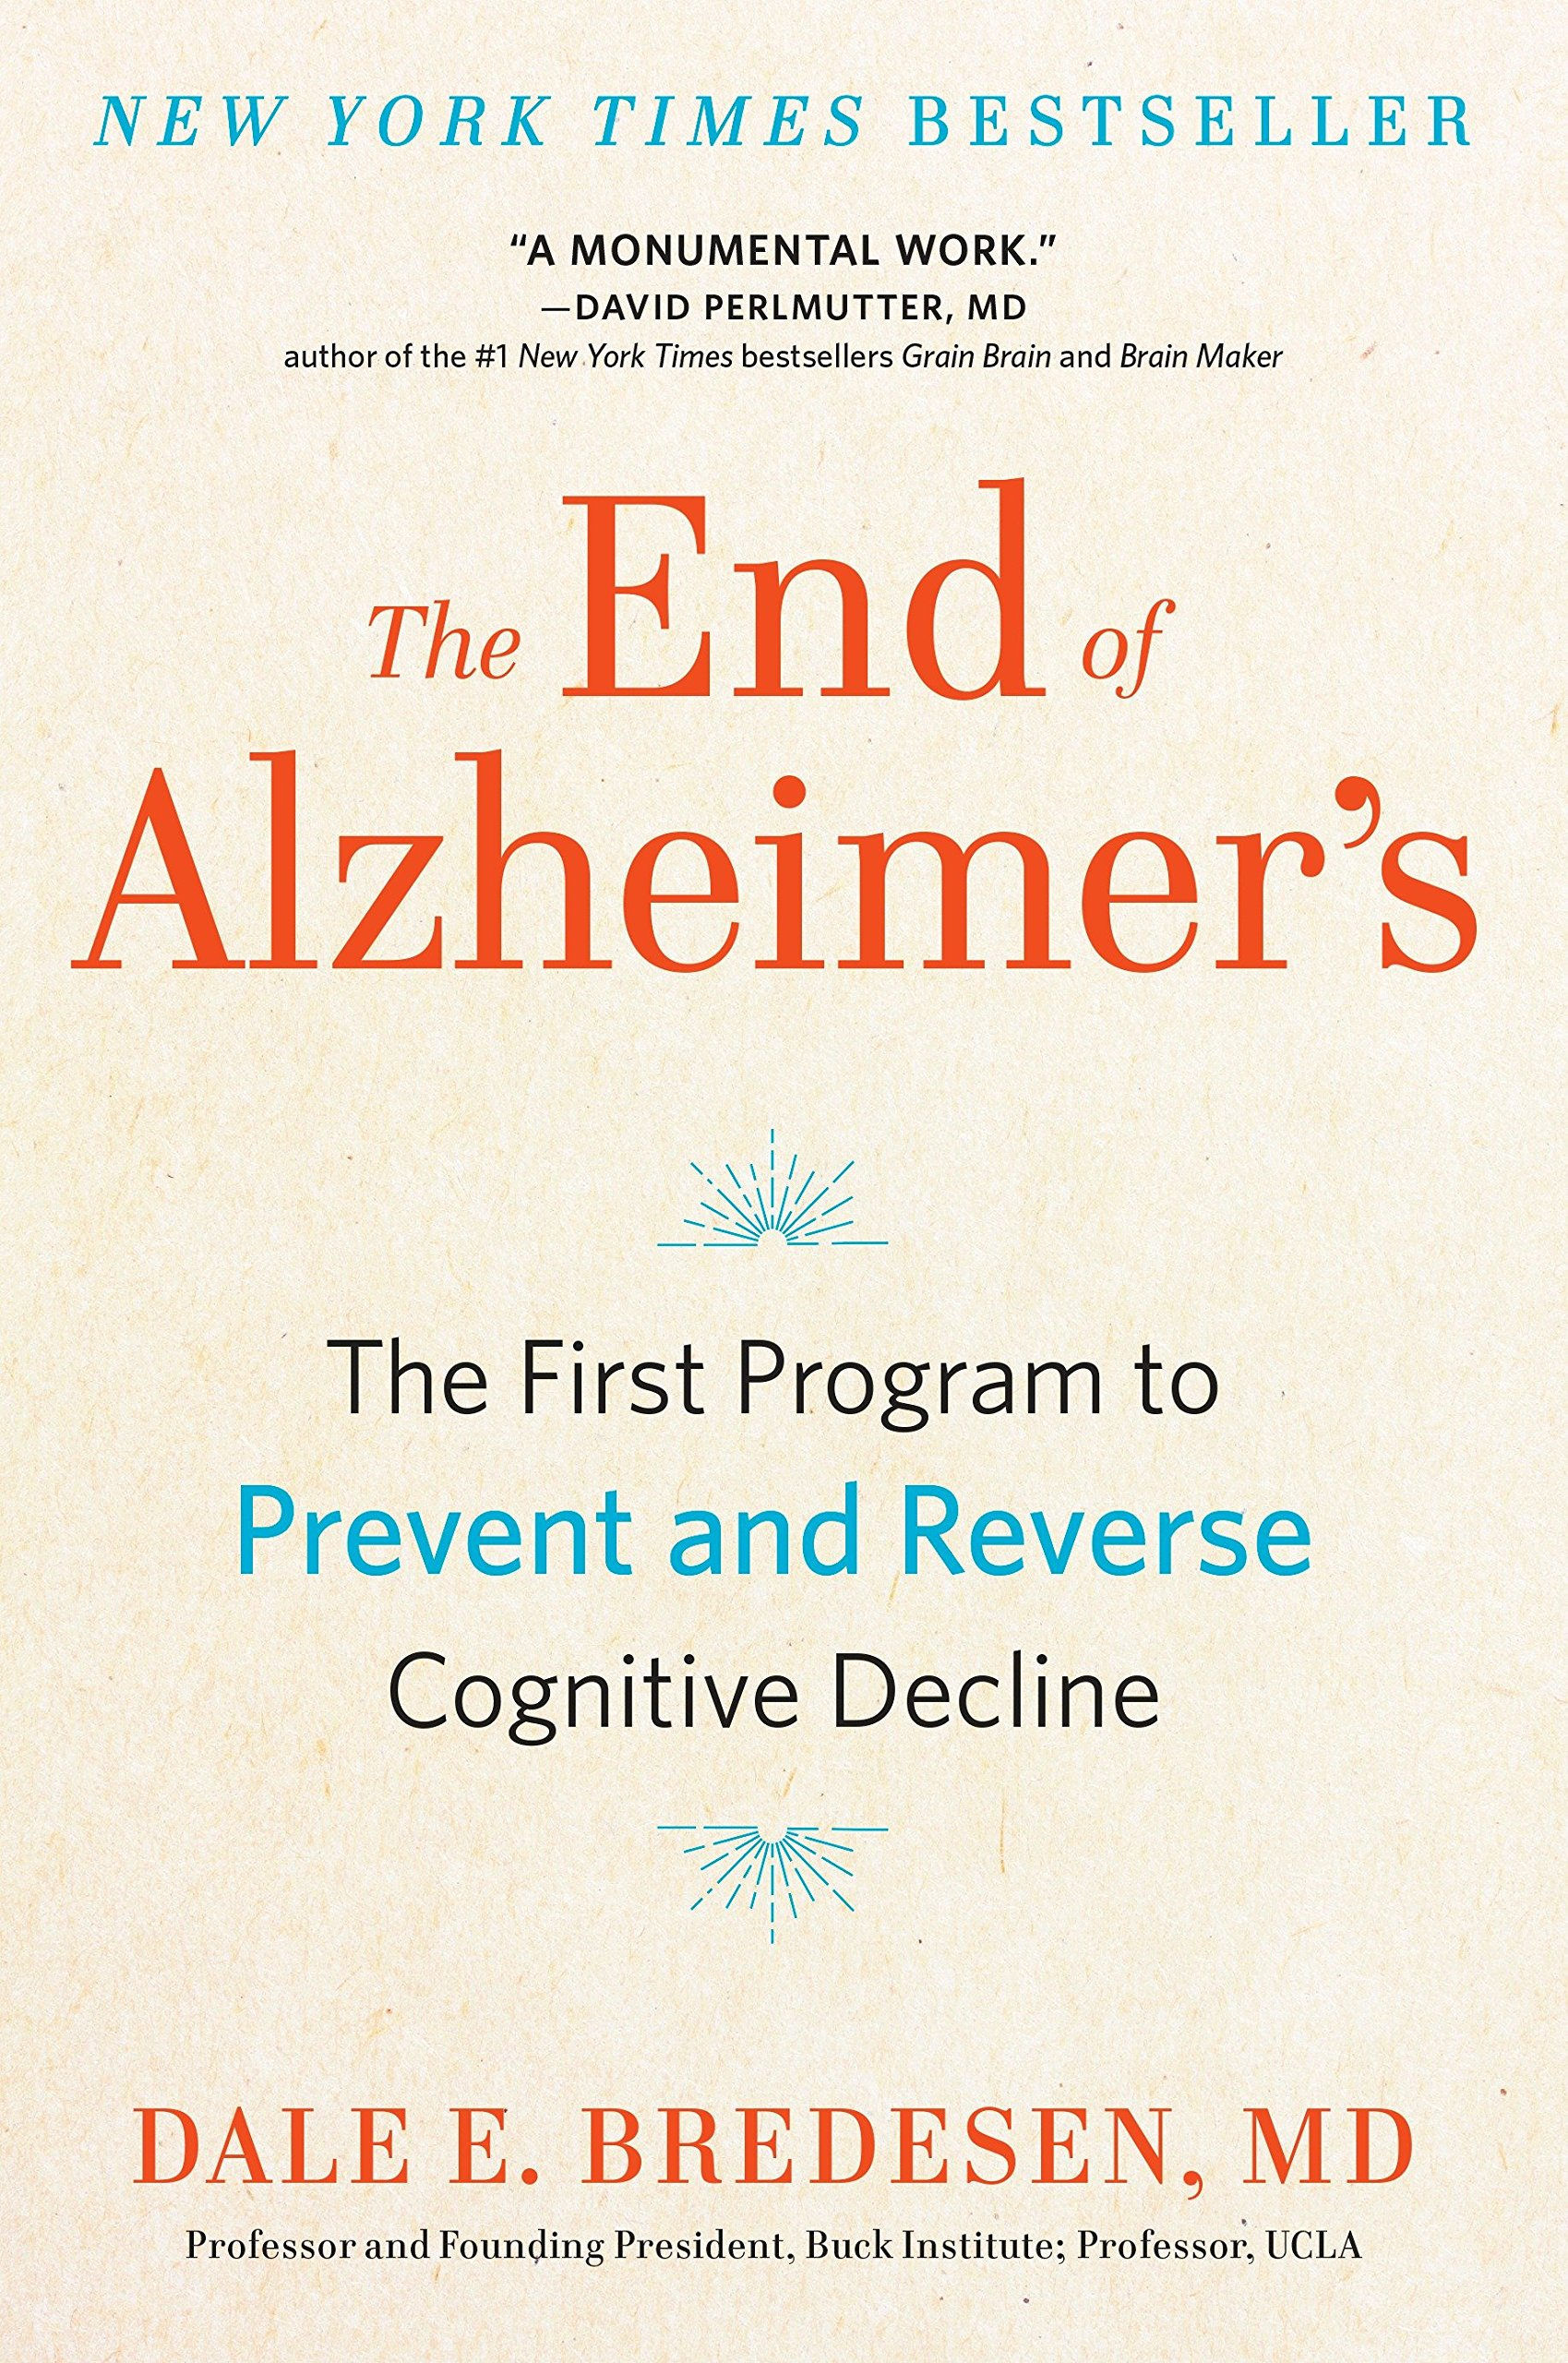 Alzheimer's in the Family: A Novel Approach